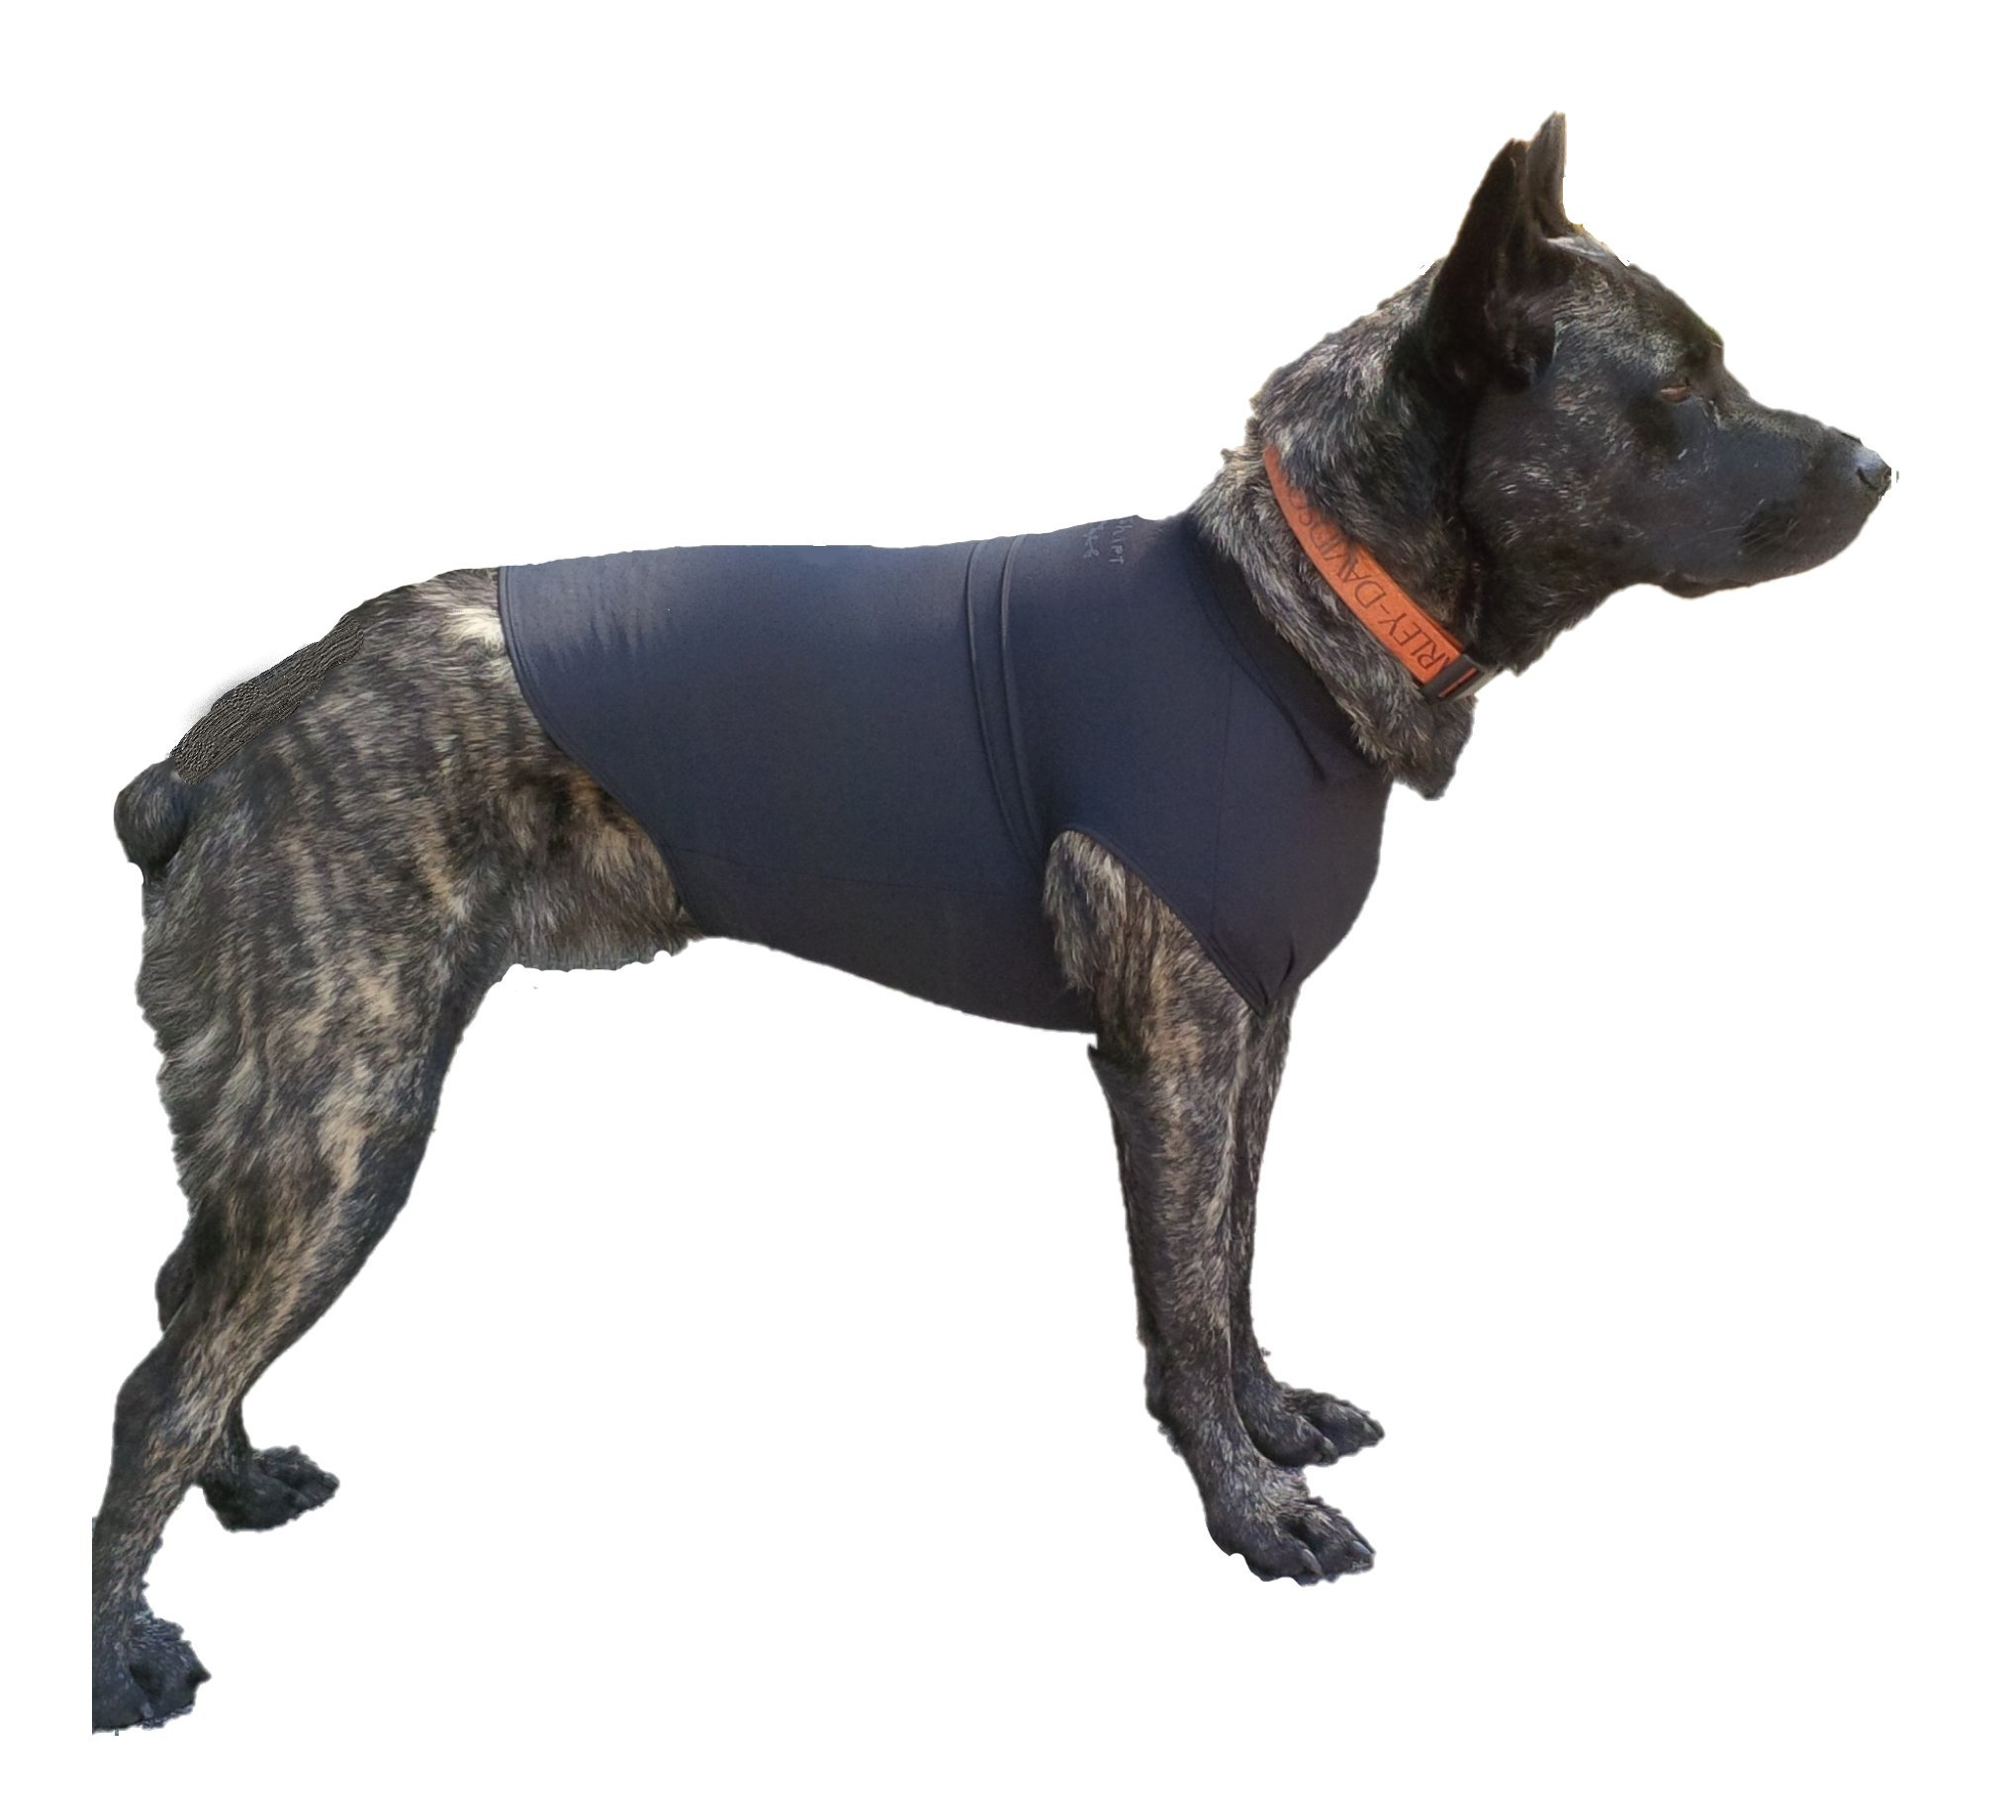 Swaddleshirt Anti Anxiety Vest For Dogs | The Best Weight Vest For Dog Anxiety Relief. Effectively Calm Dogs during Thunderstorms, Fireworks, Travel, And More. (Black, Medium)